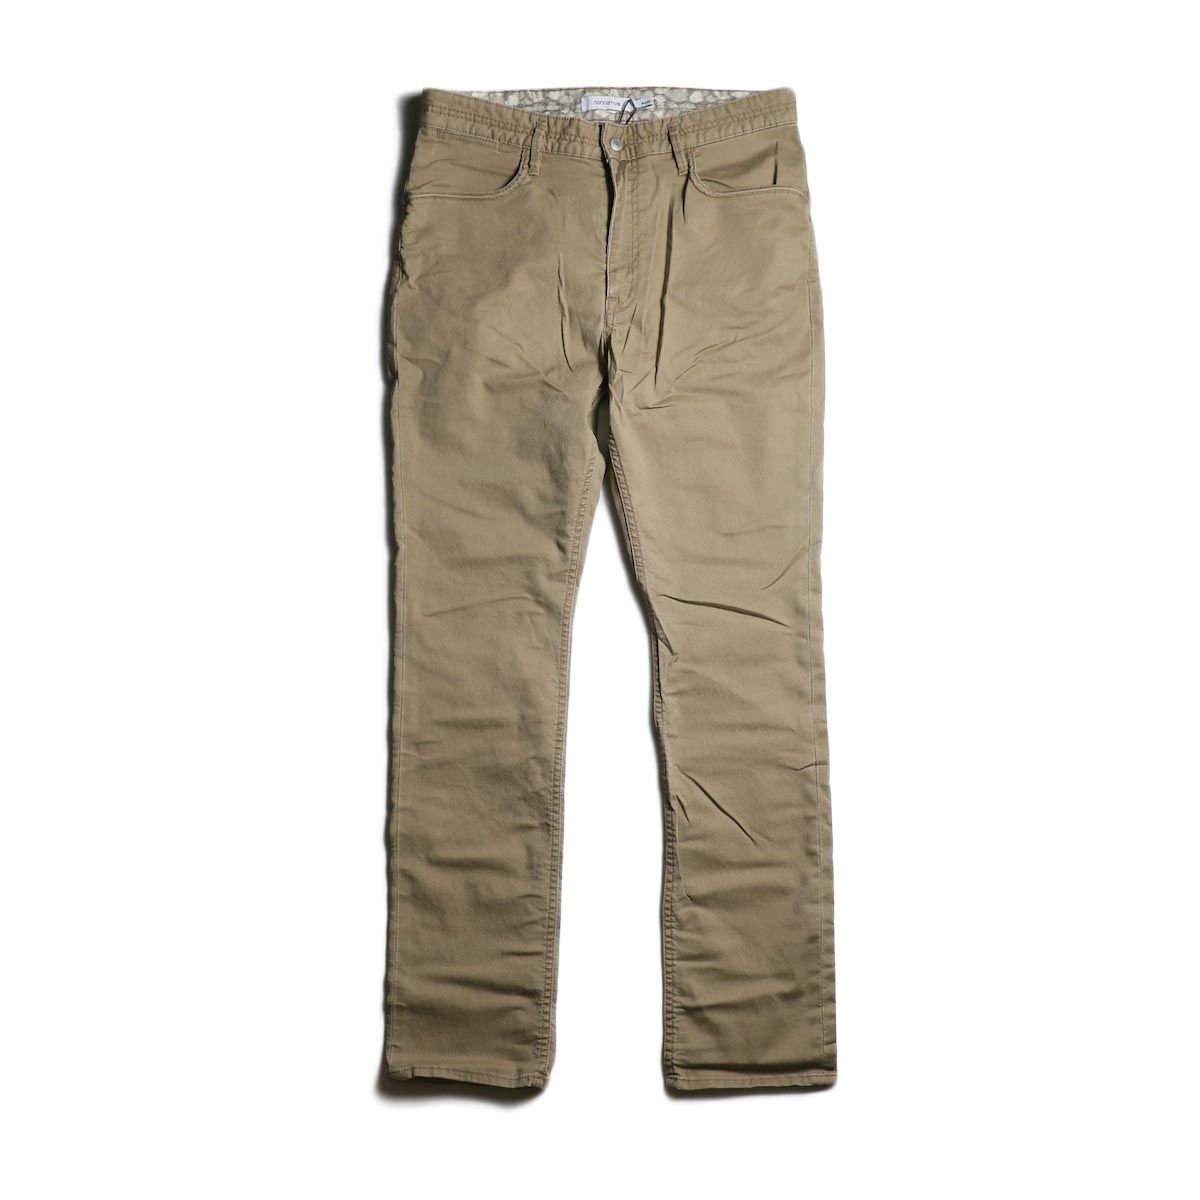 nonnative / DWELLER 5P JEANS DROPPED FIT C/P JEAN CORD STRETCH (Beige)